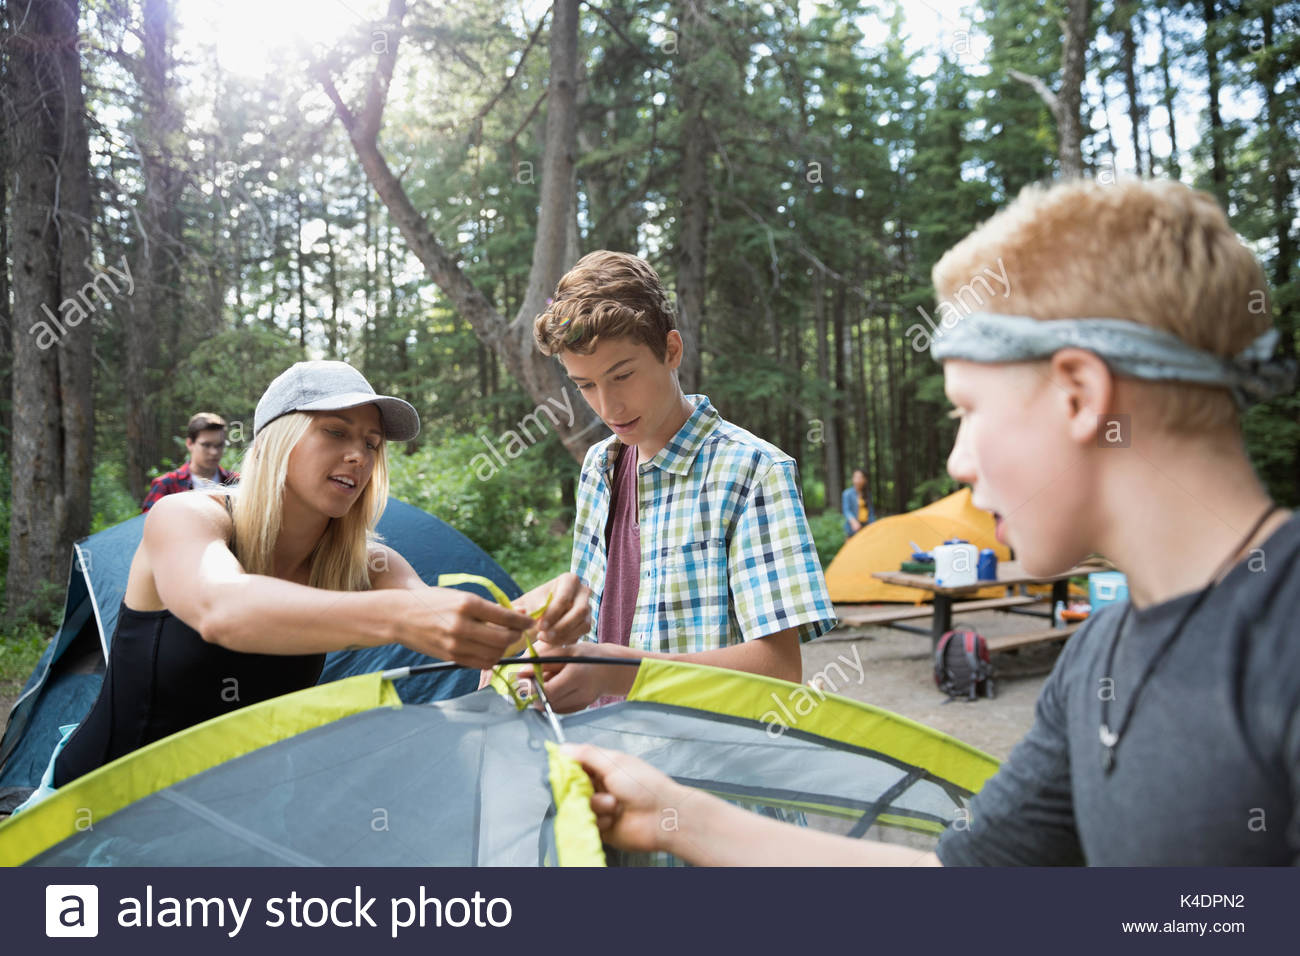 Female teacher showing teenage outdoor school boy students how to pitch a tent at campsite - Stock Image